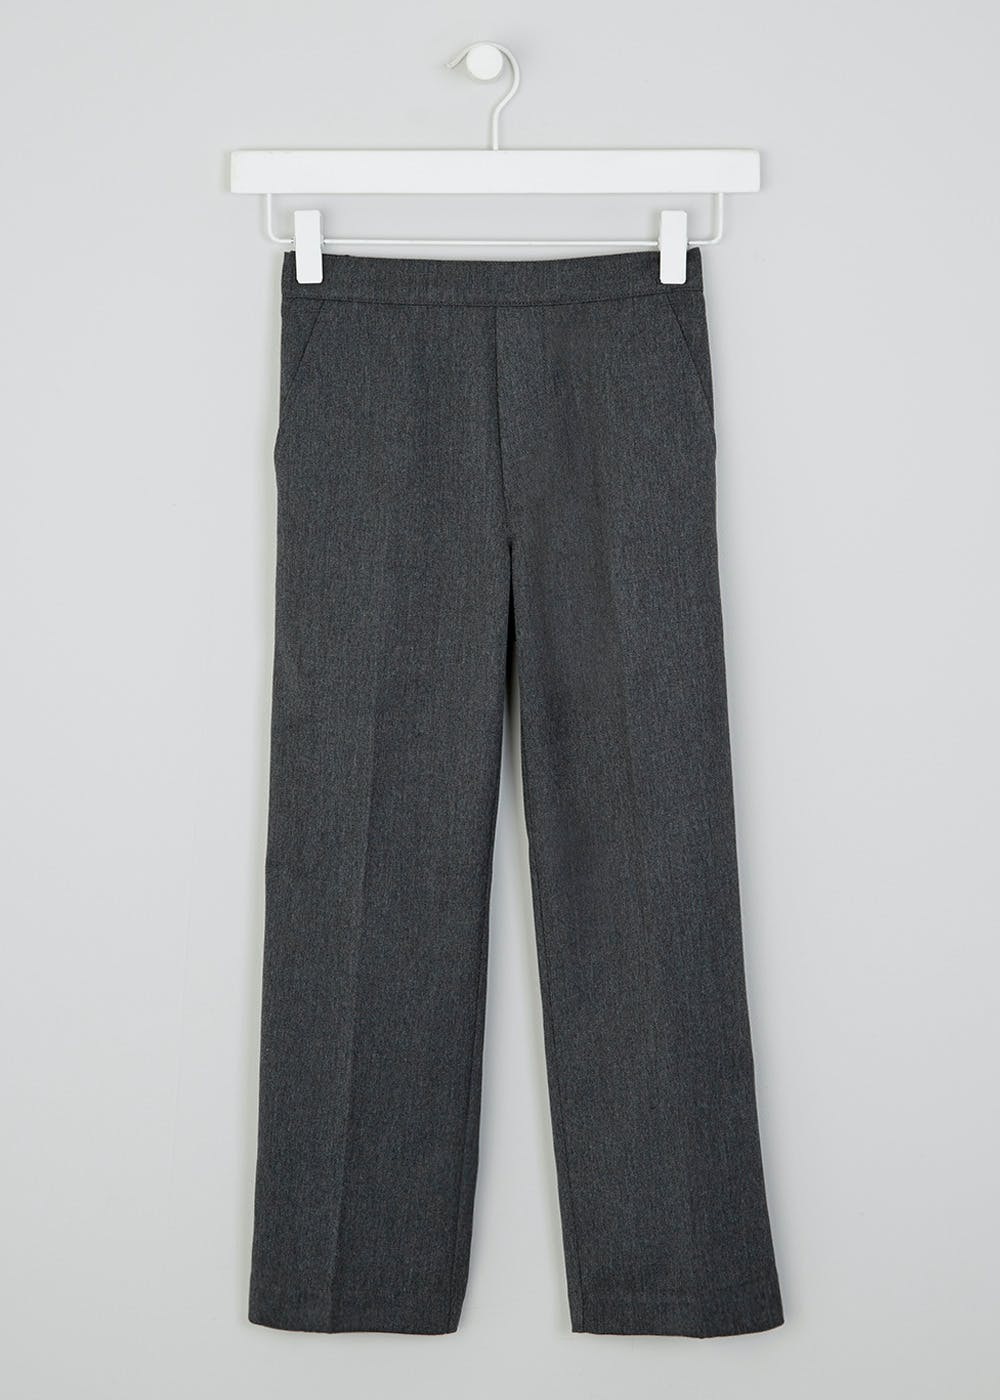 Boys Classic Fit Pull On School Trousers 3 11yrs